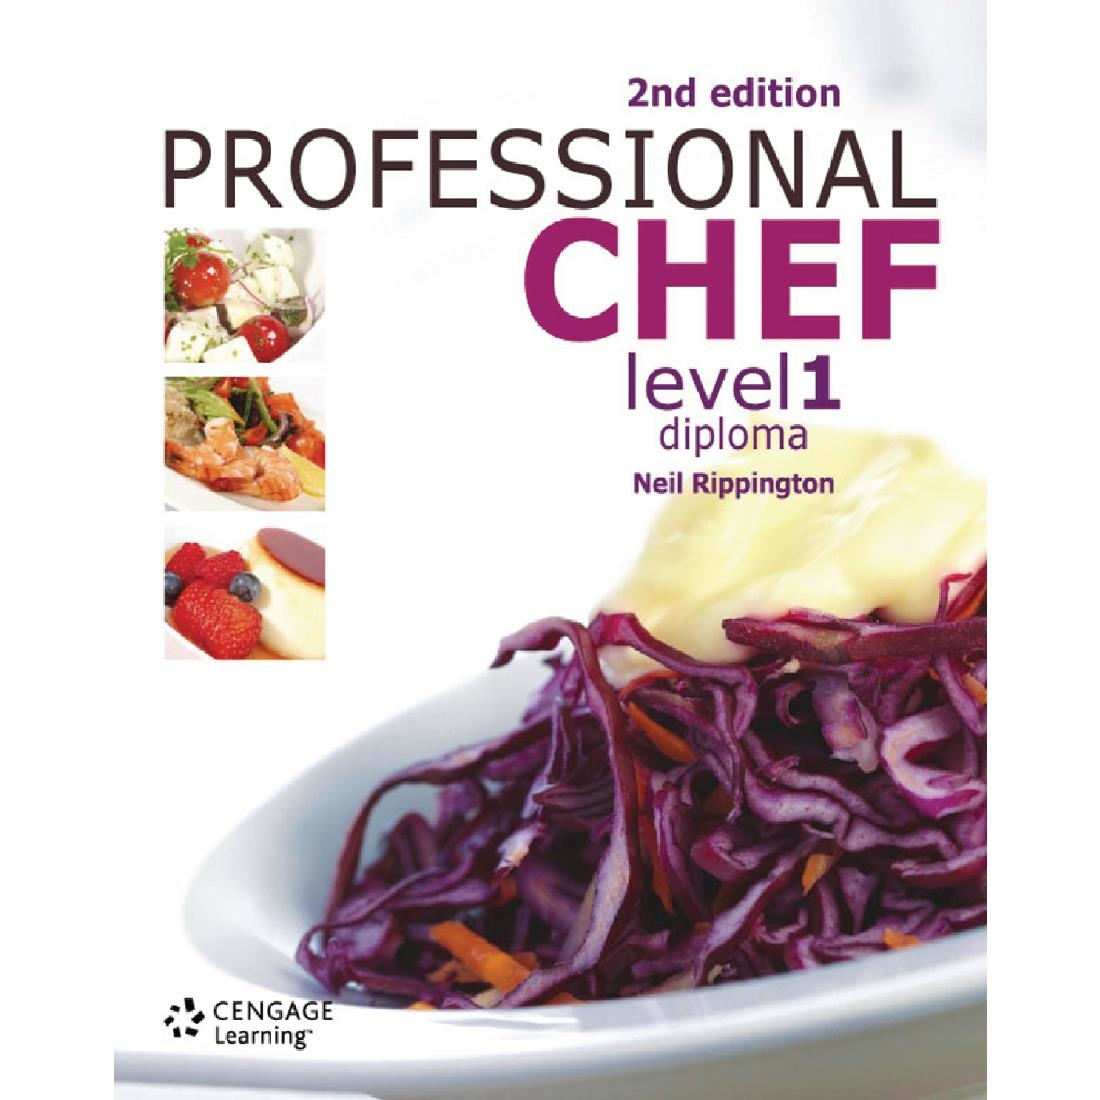 Image of Professional Chef Level 1 Diploma - 2nd edition